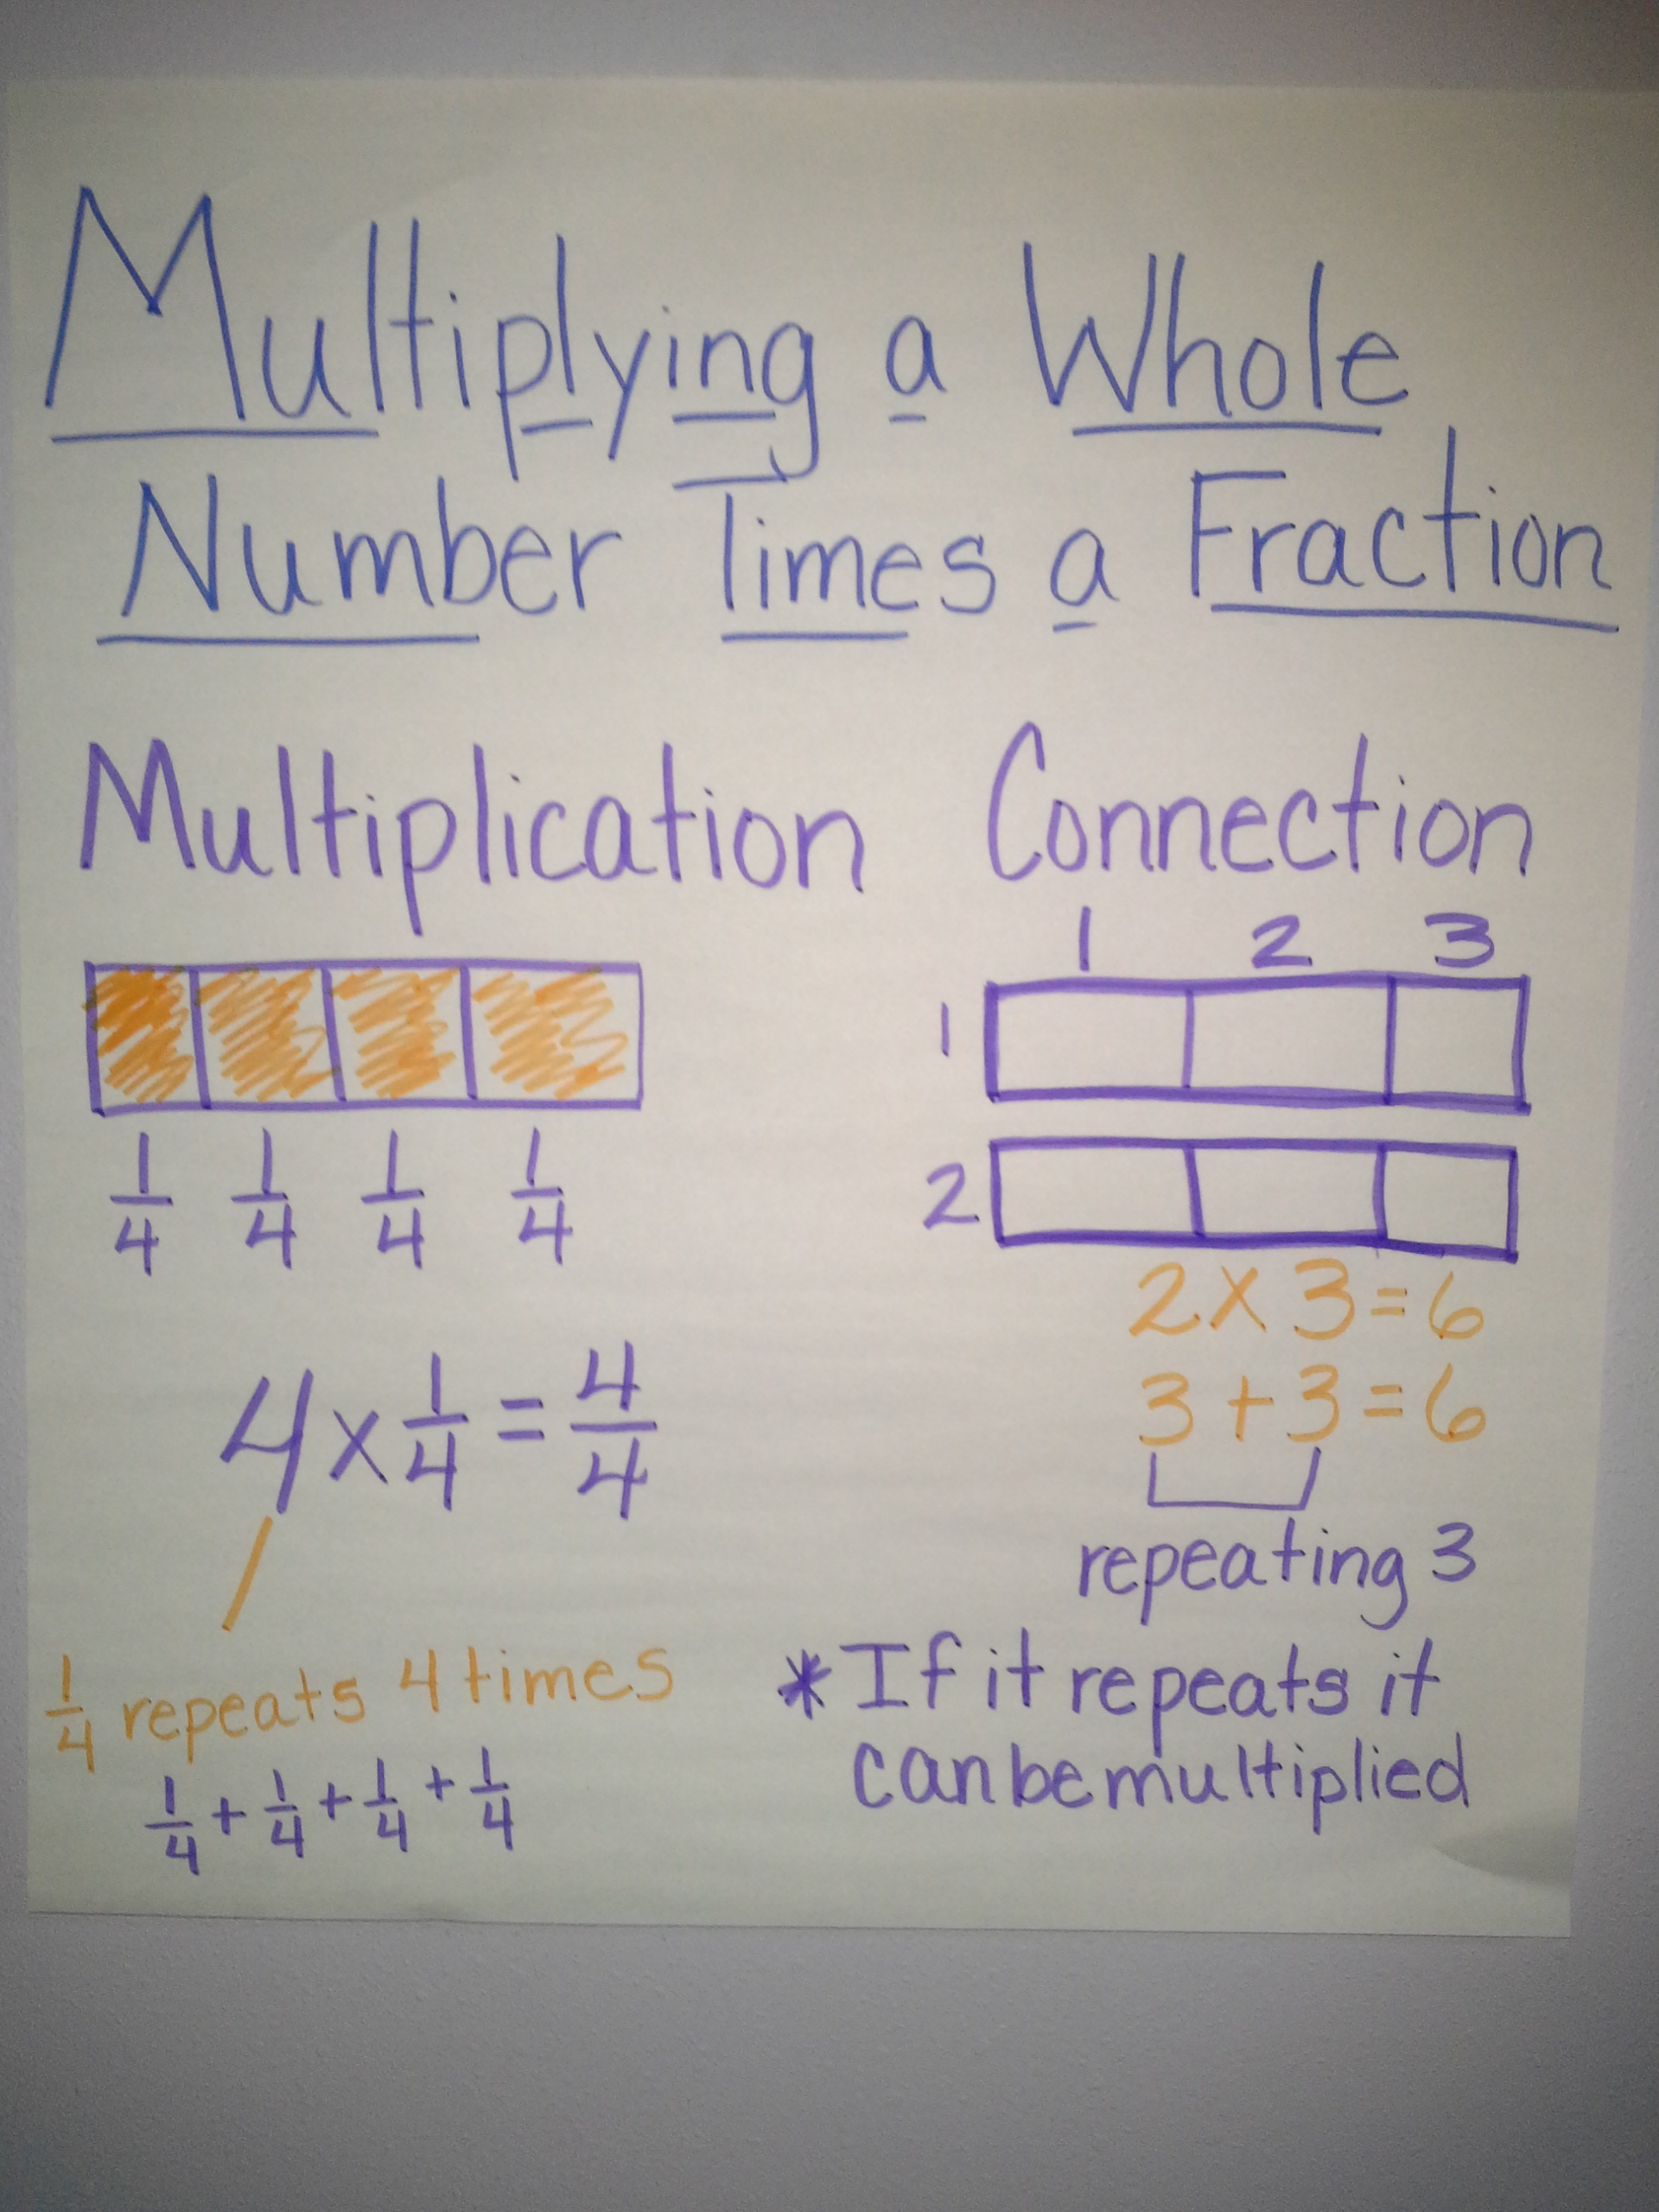 Decomposing Fractions To Multiply